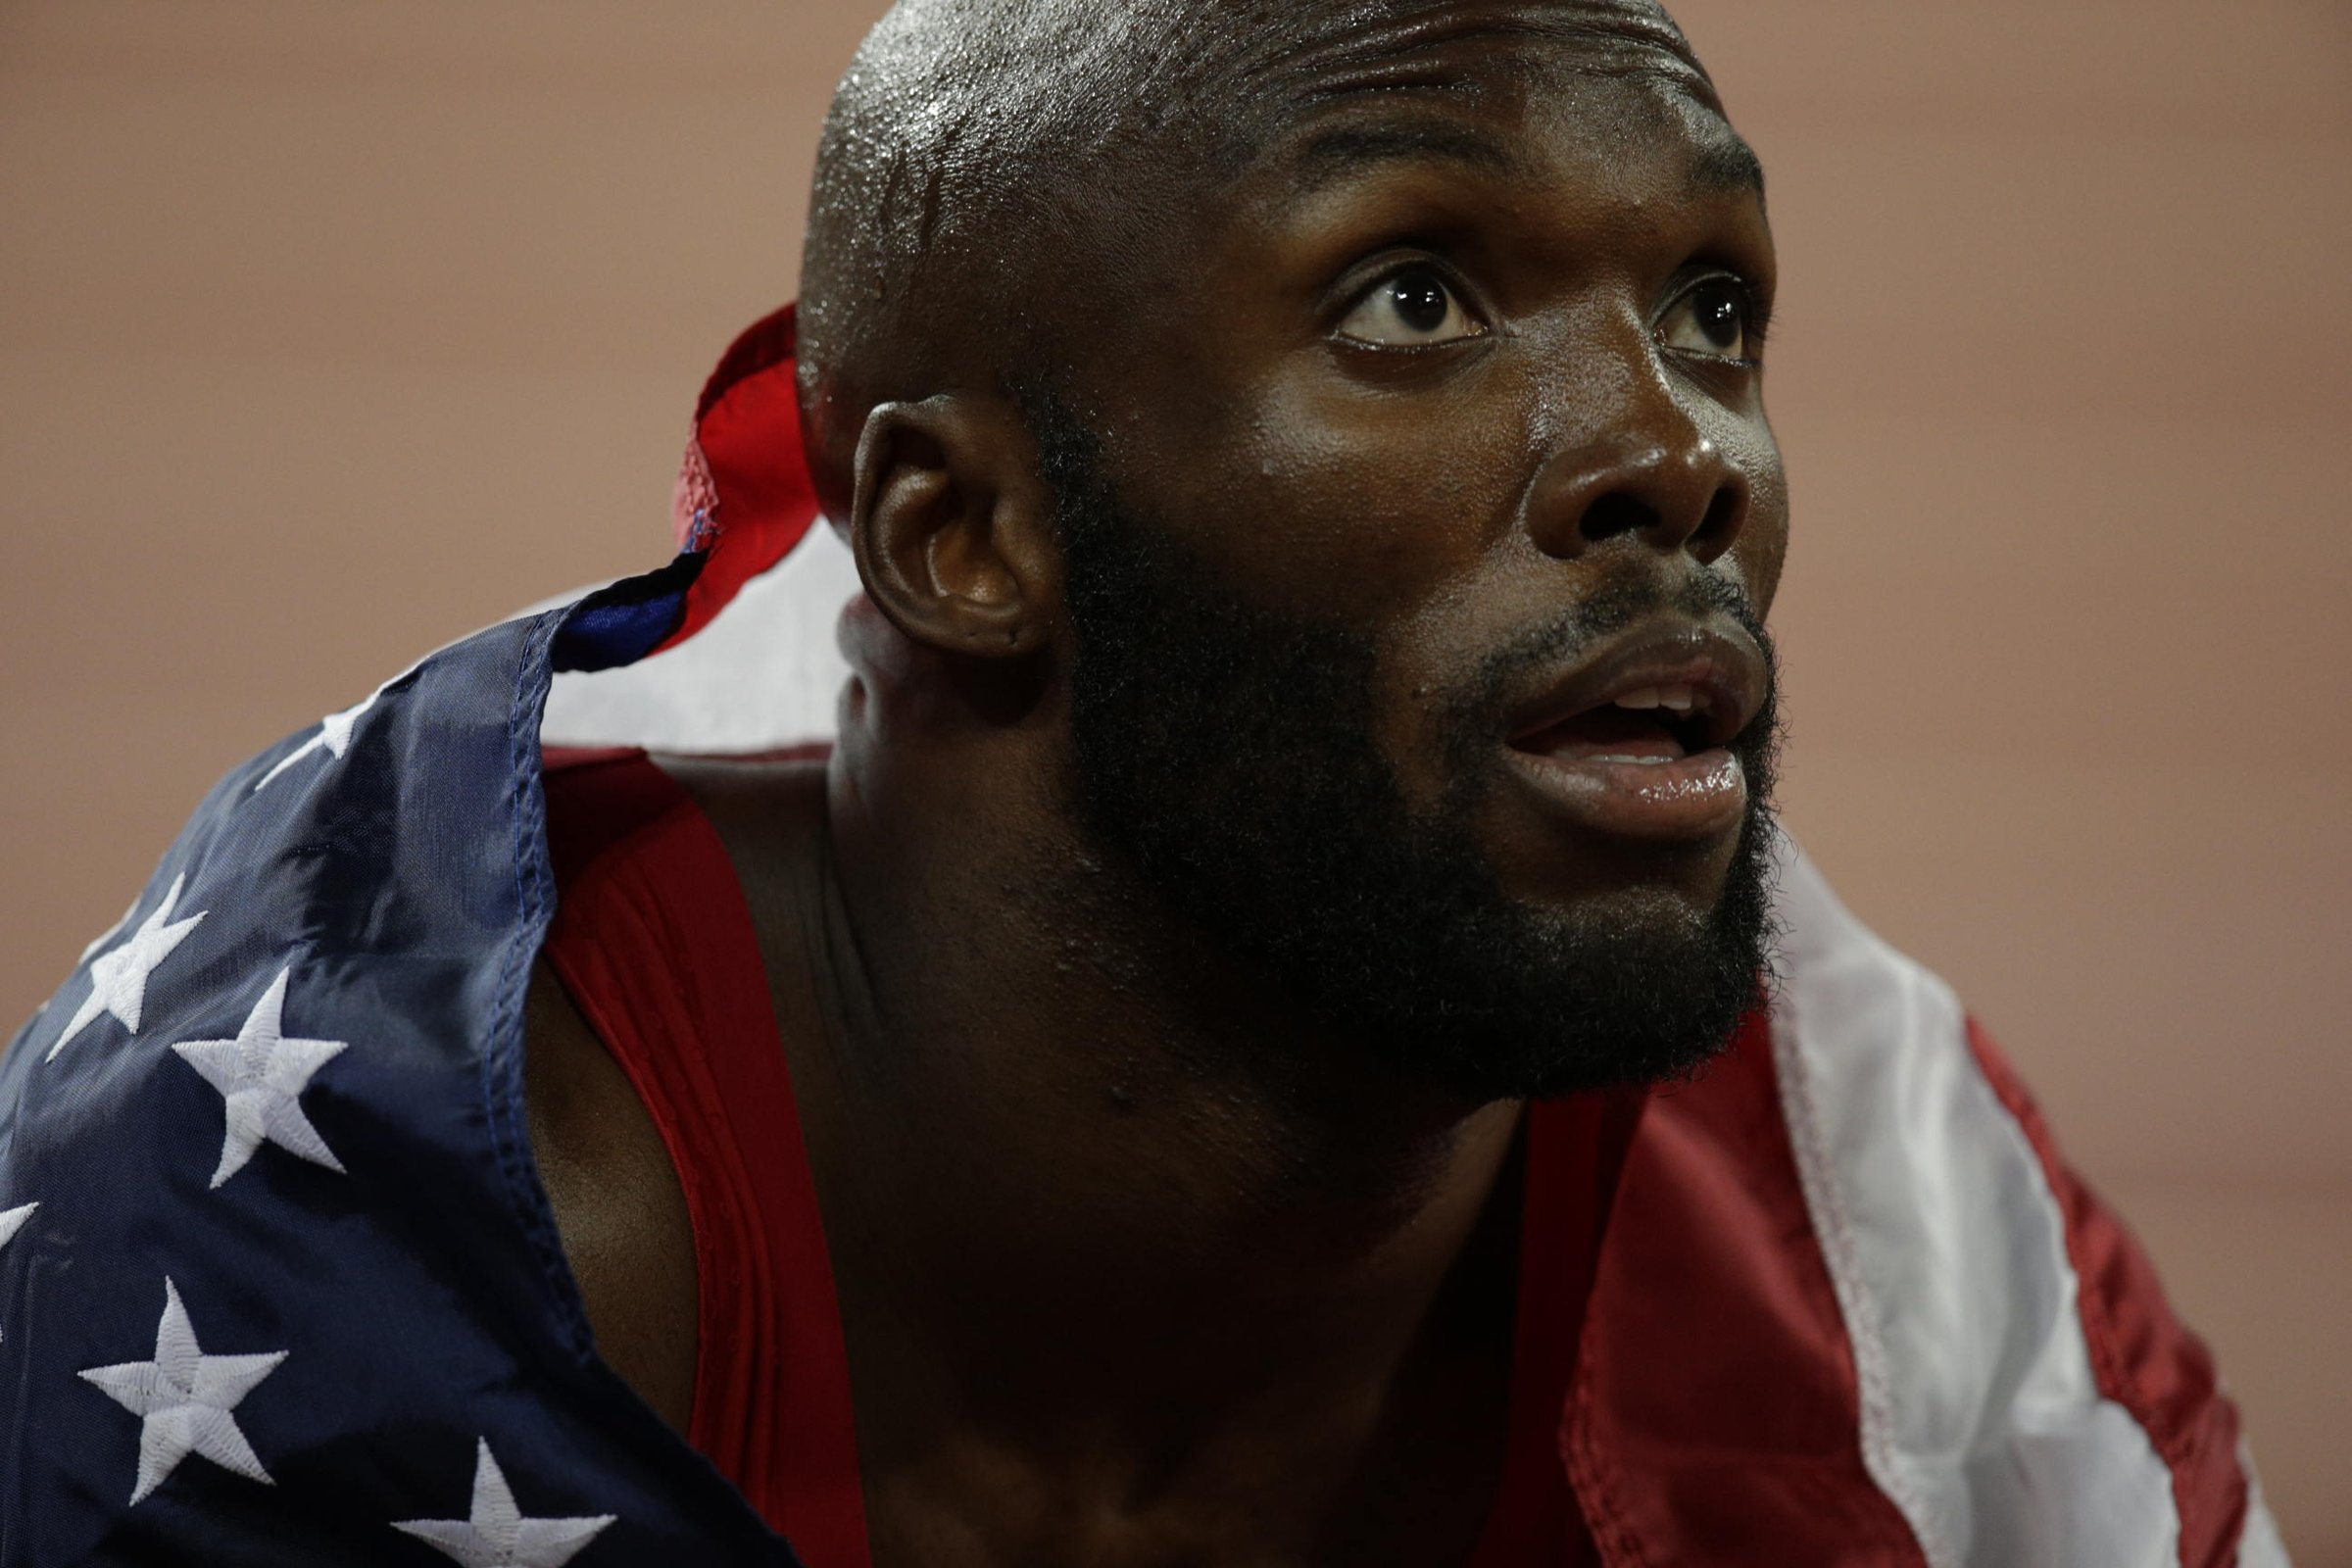 LaShawn Merritt (USA) looks up at the results board to see a new personal best of 43.65 for a silver medal in the men's 400.